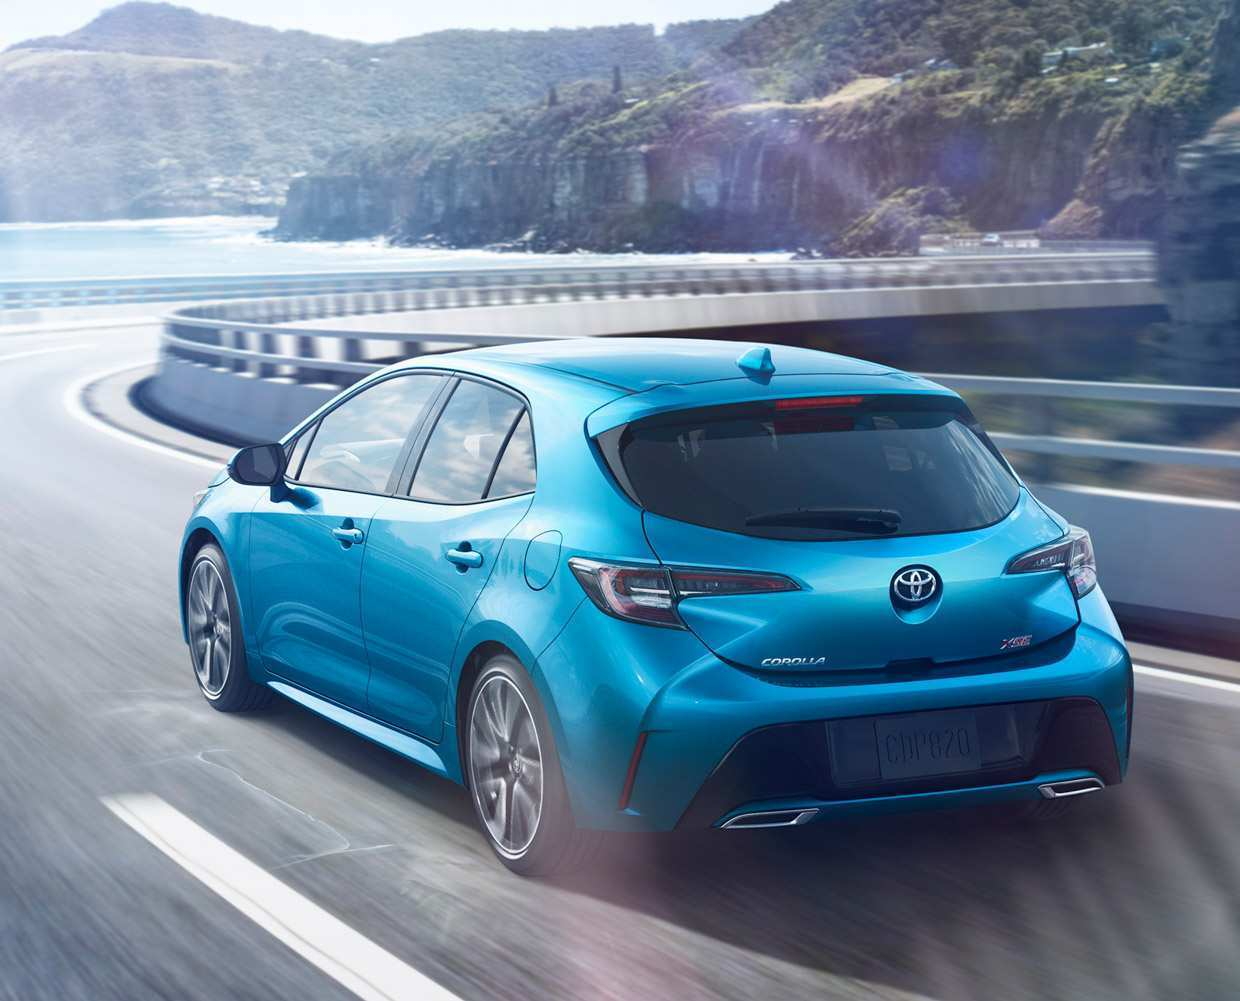 18 Concept of 2019 Toyota Corolla Im Engine for 2019 Toyota Corolla Im